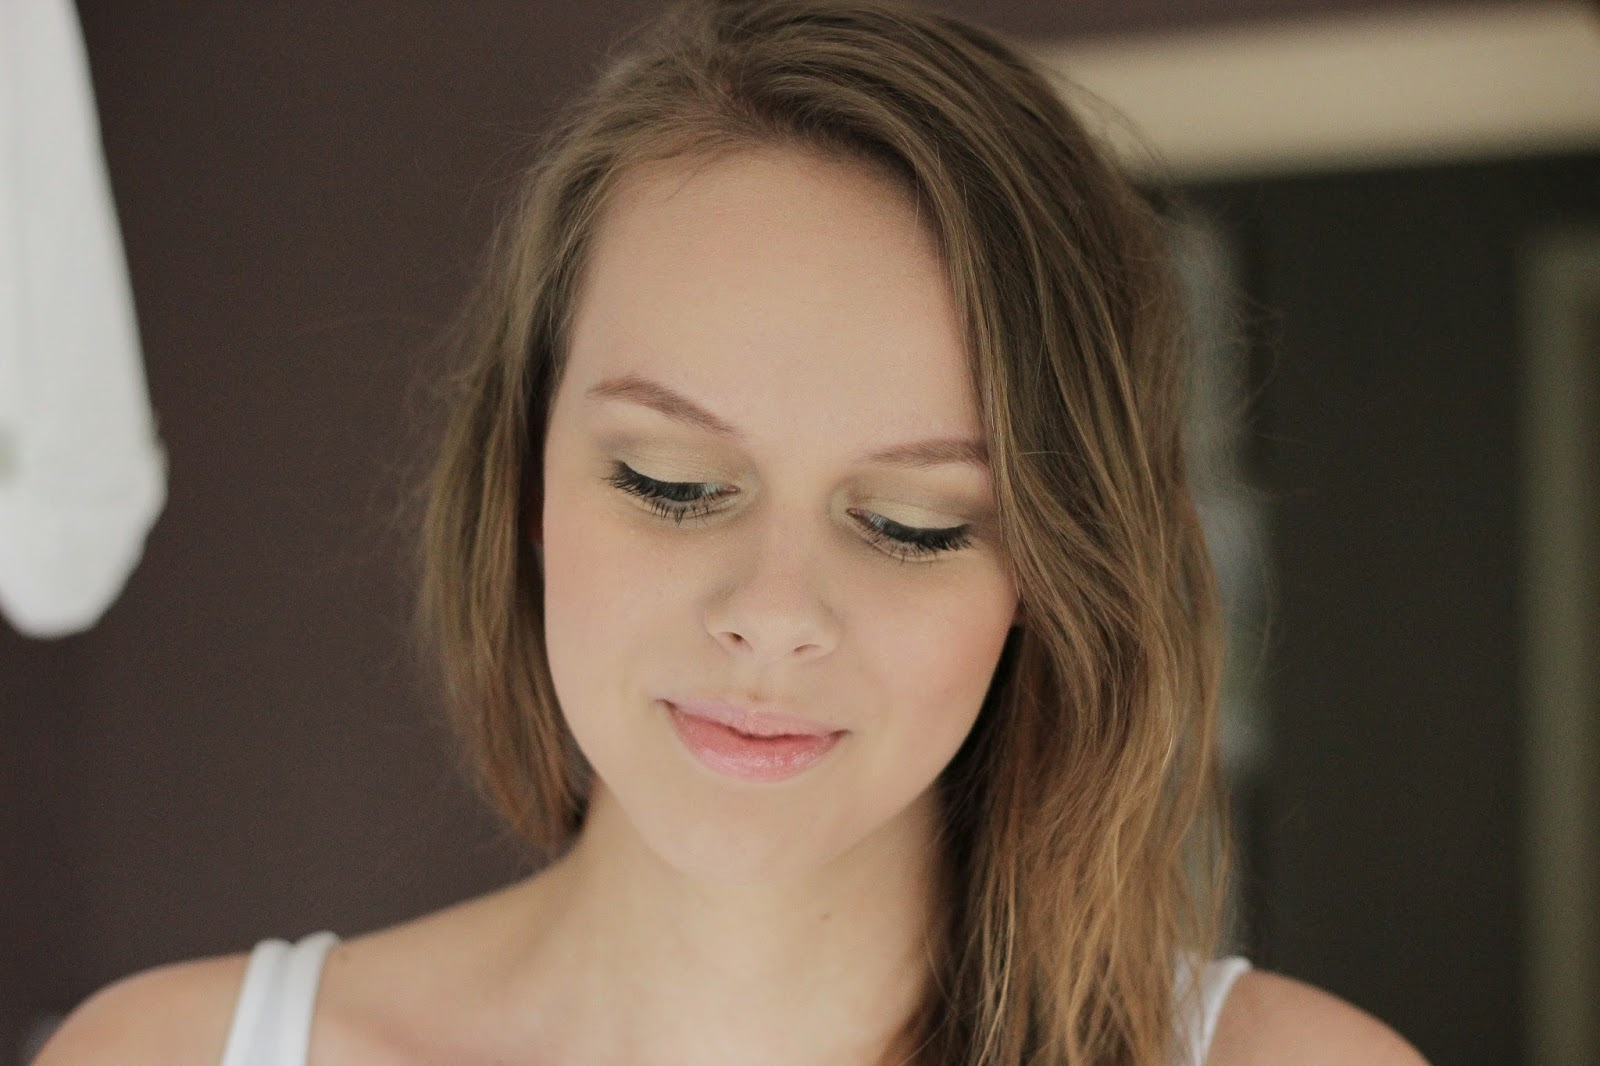 back to school makeup look, back to school make-up budget look